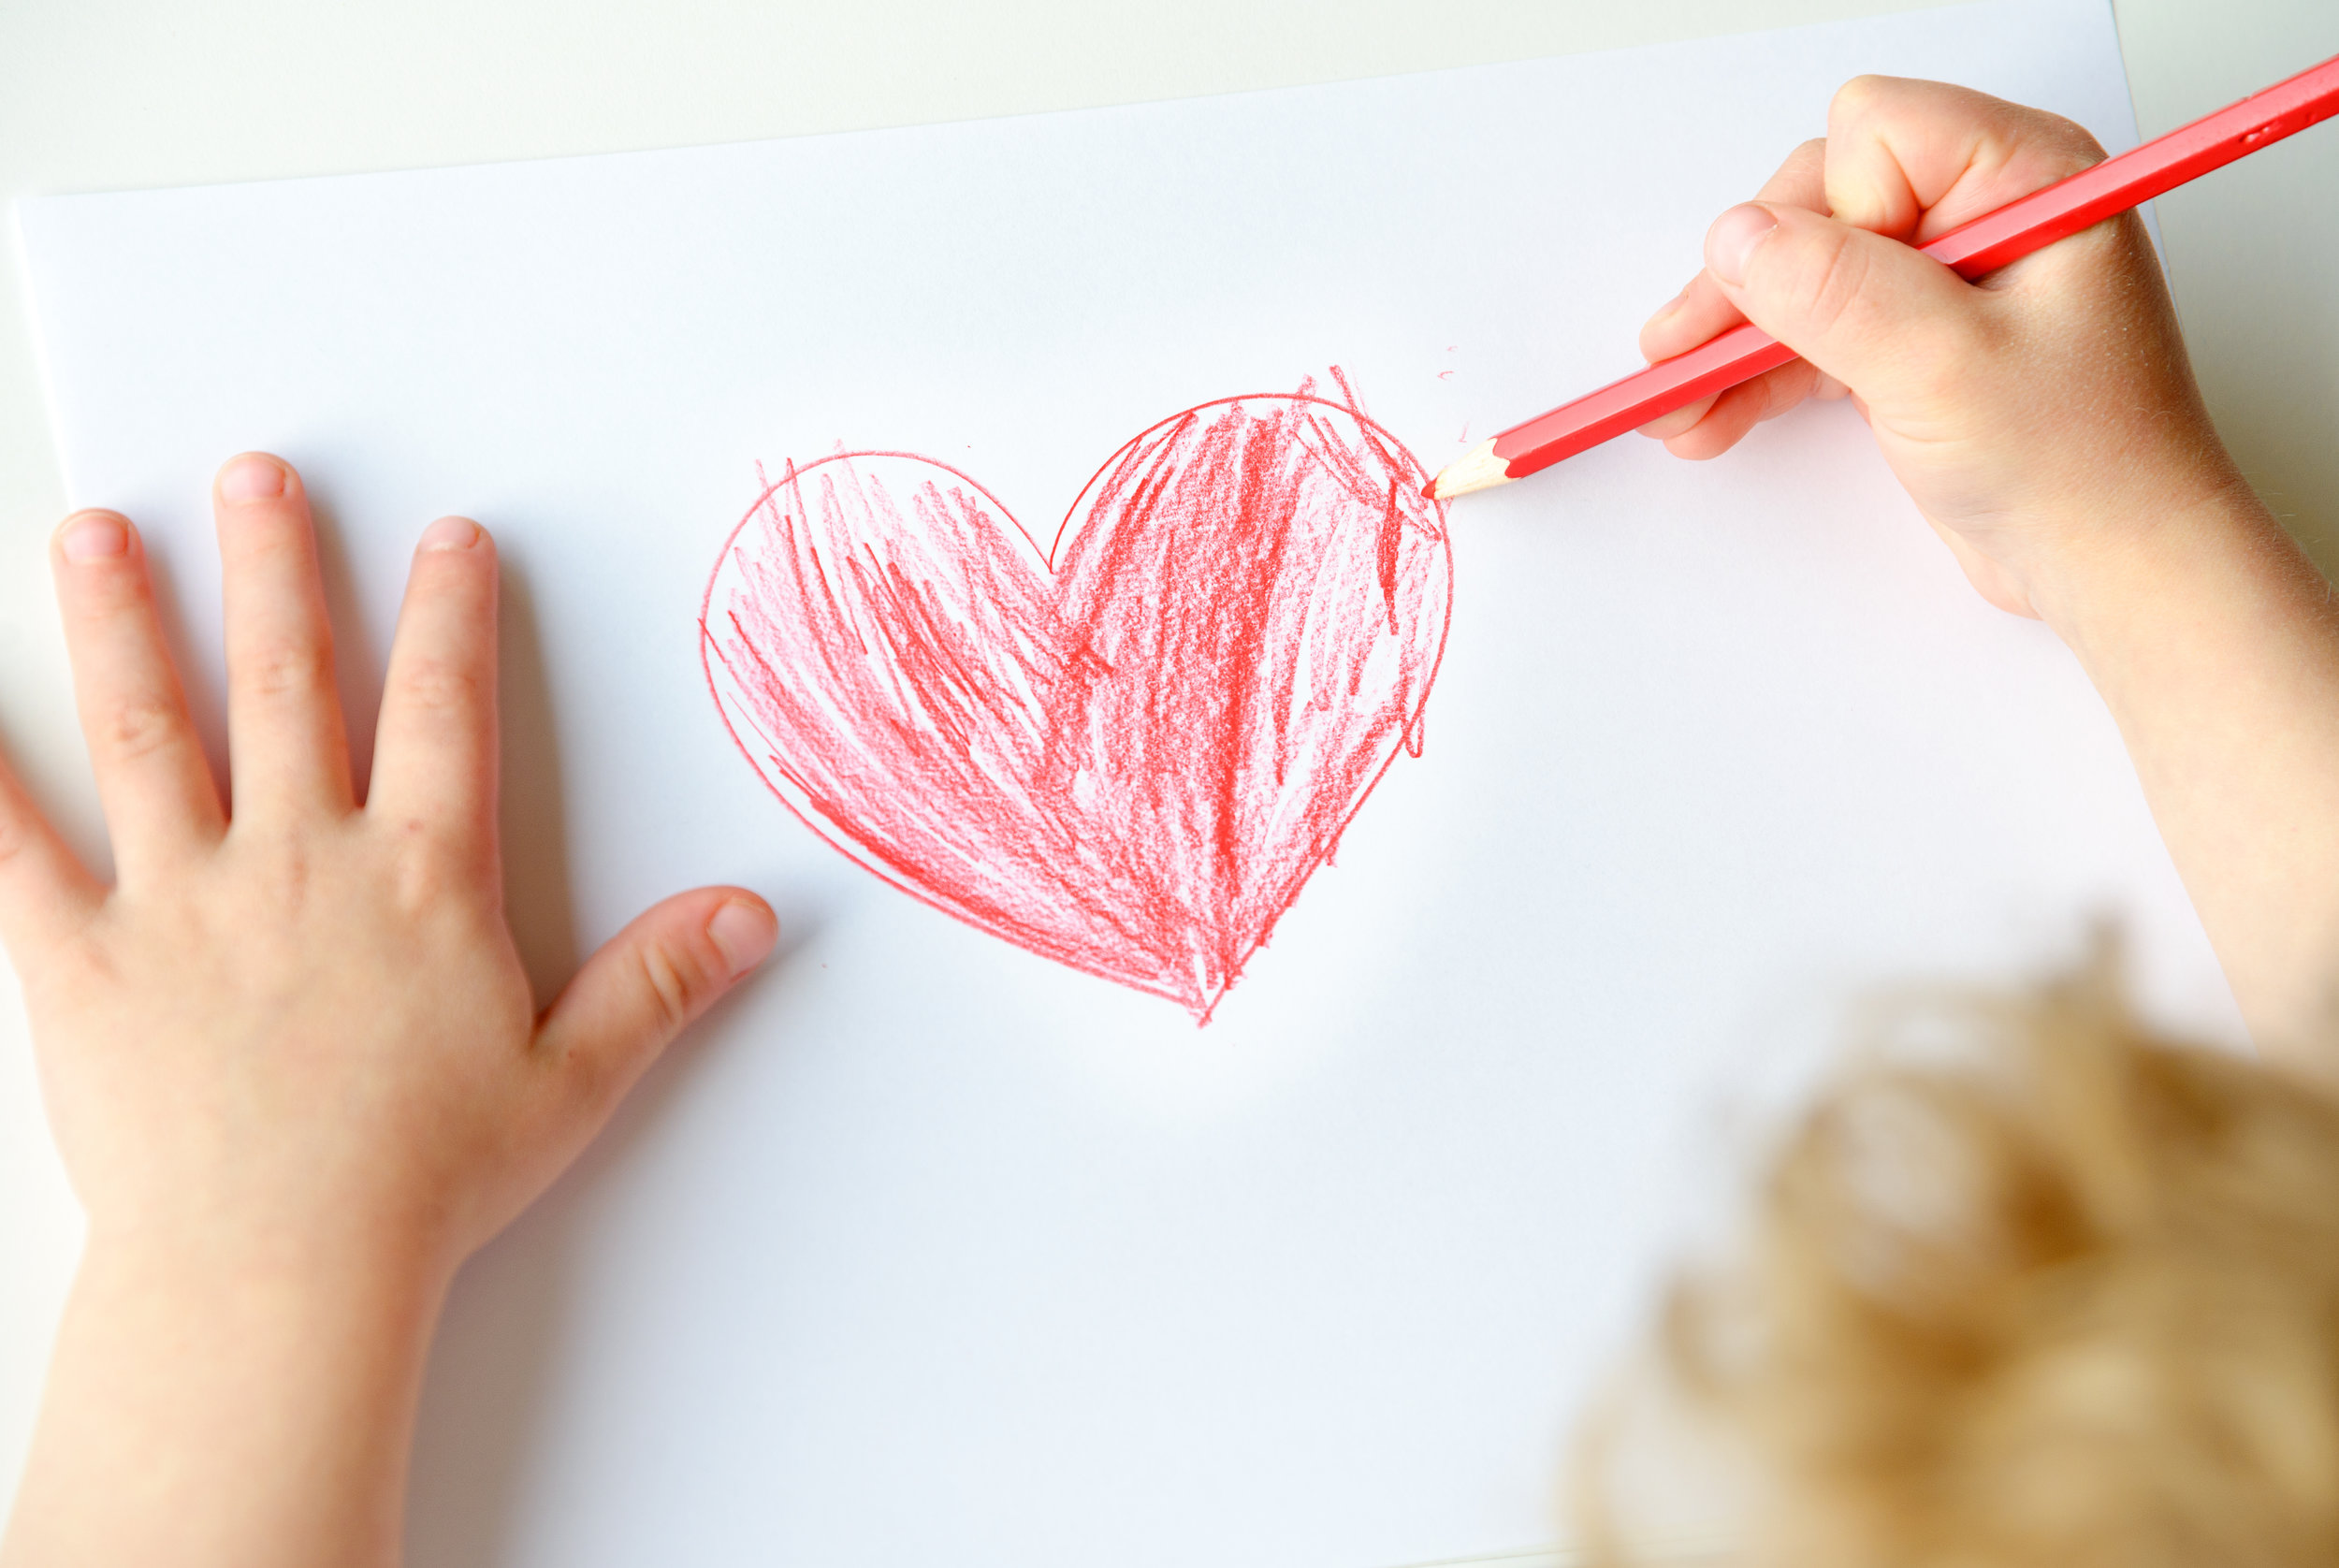 coloring a heart.jpg